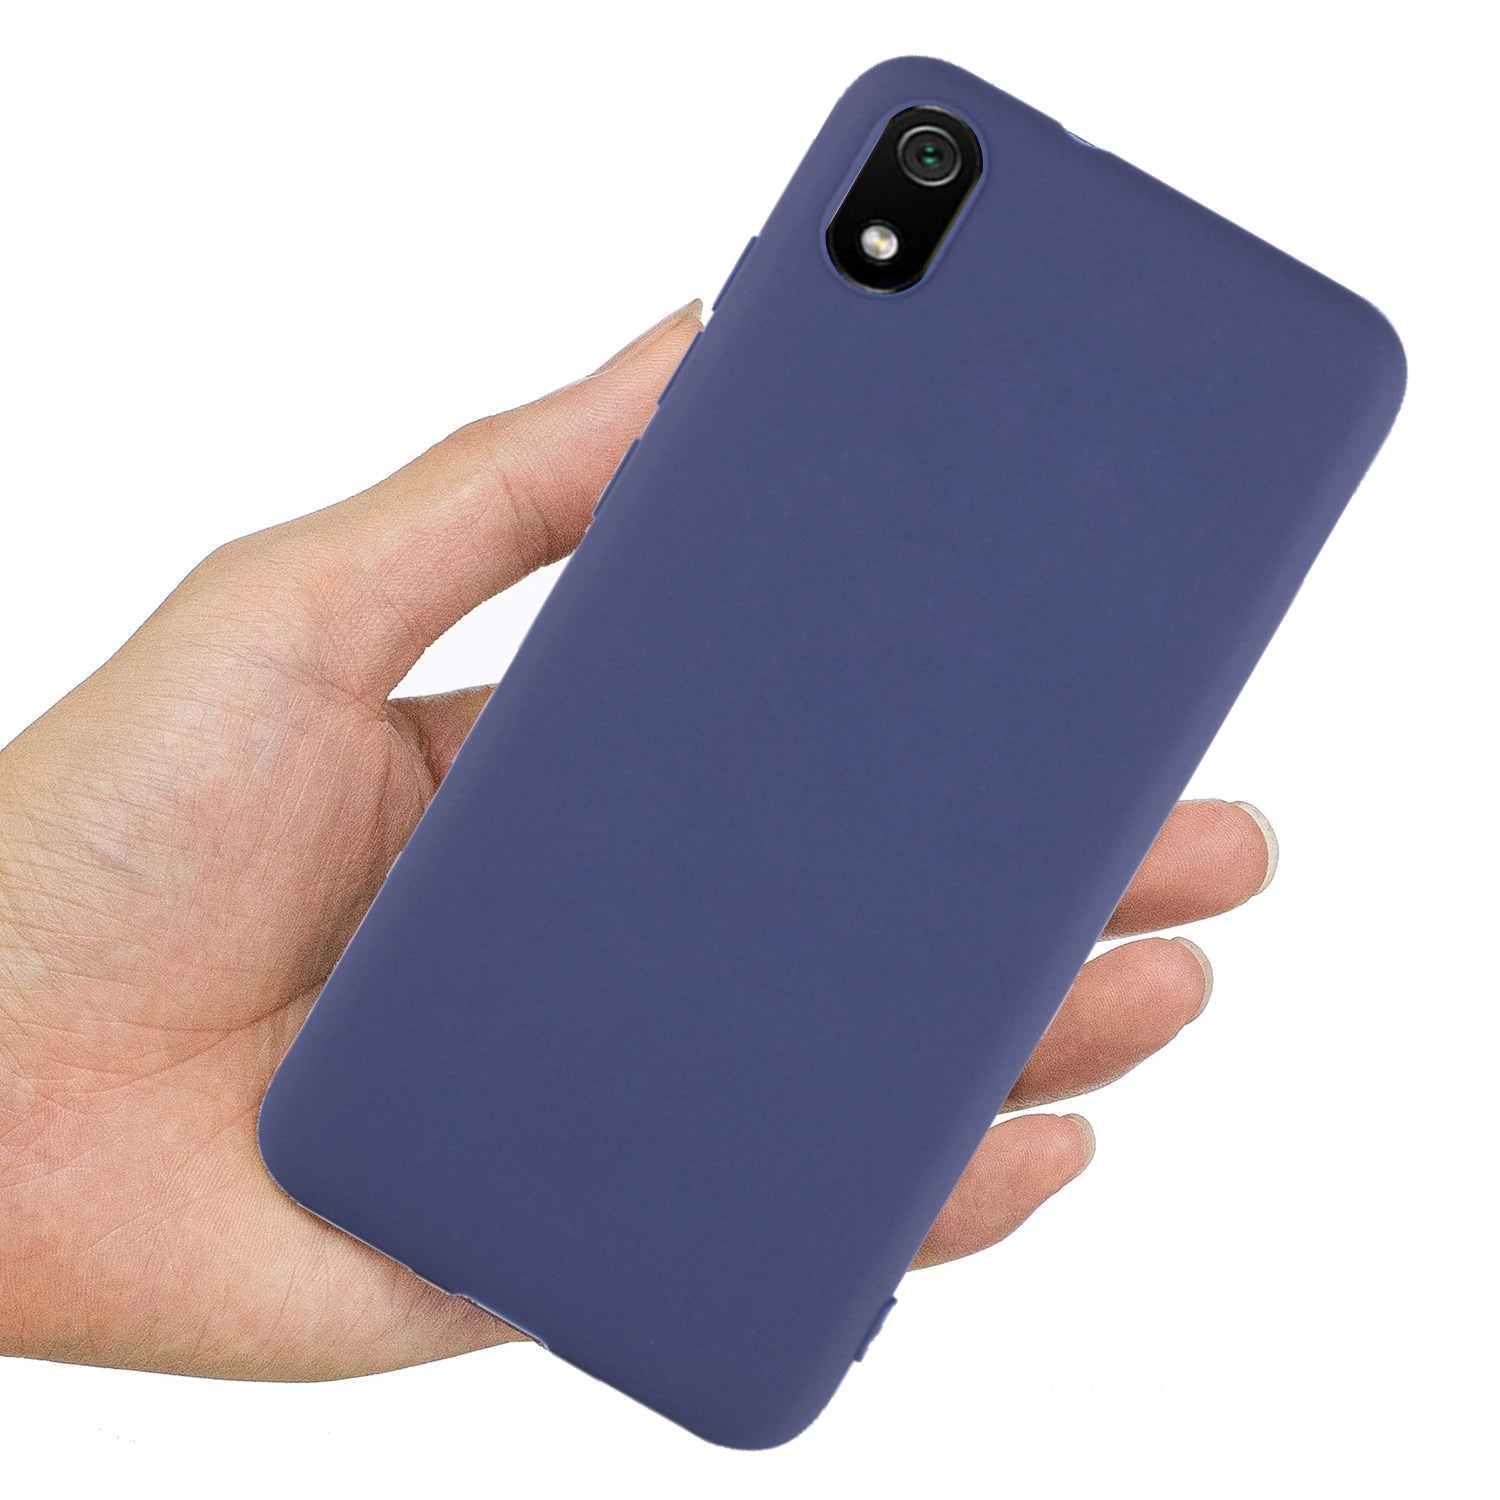 Ceego Back Cover for Xiaomi Redmi 7A - Thin Flexible Redmi 7A Case (Berry Blue)